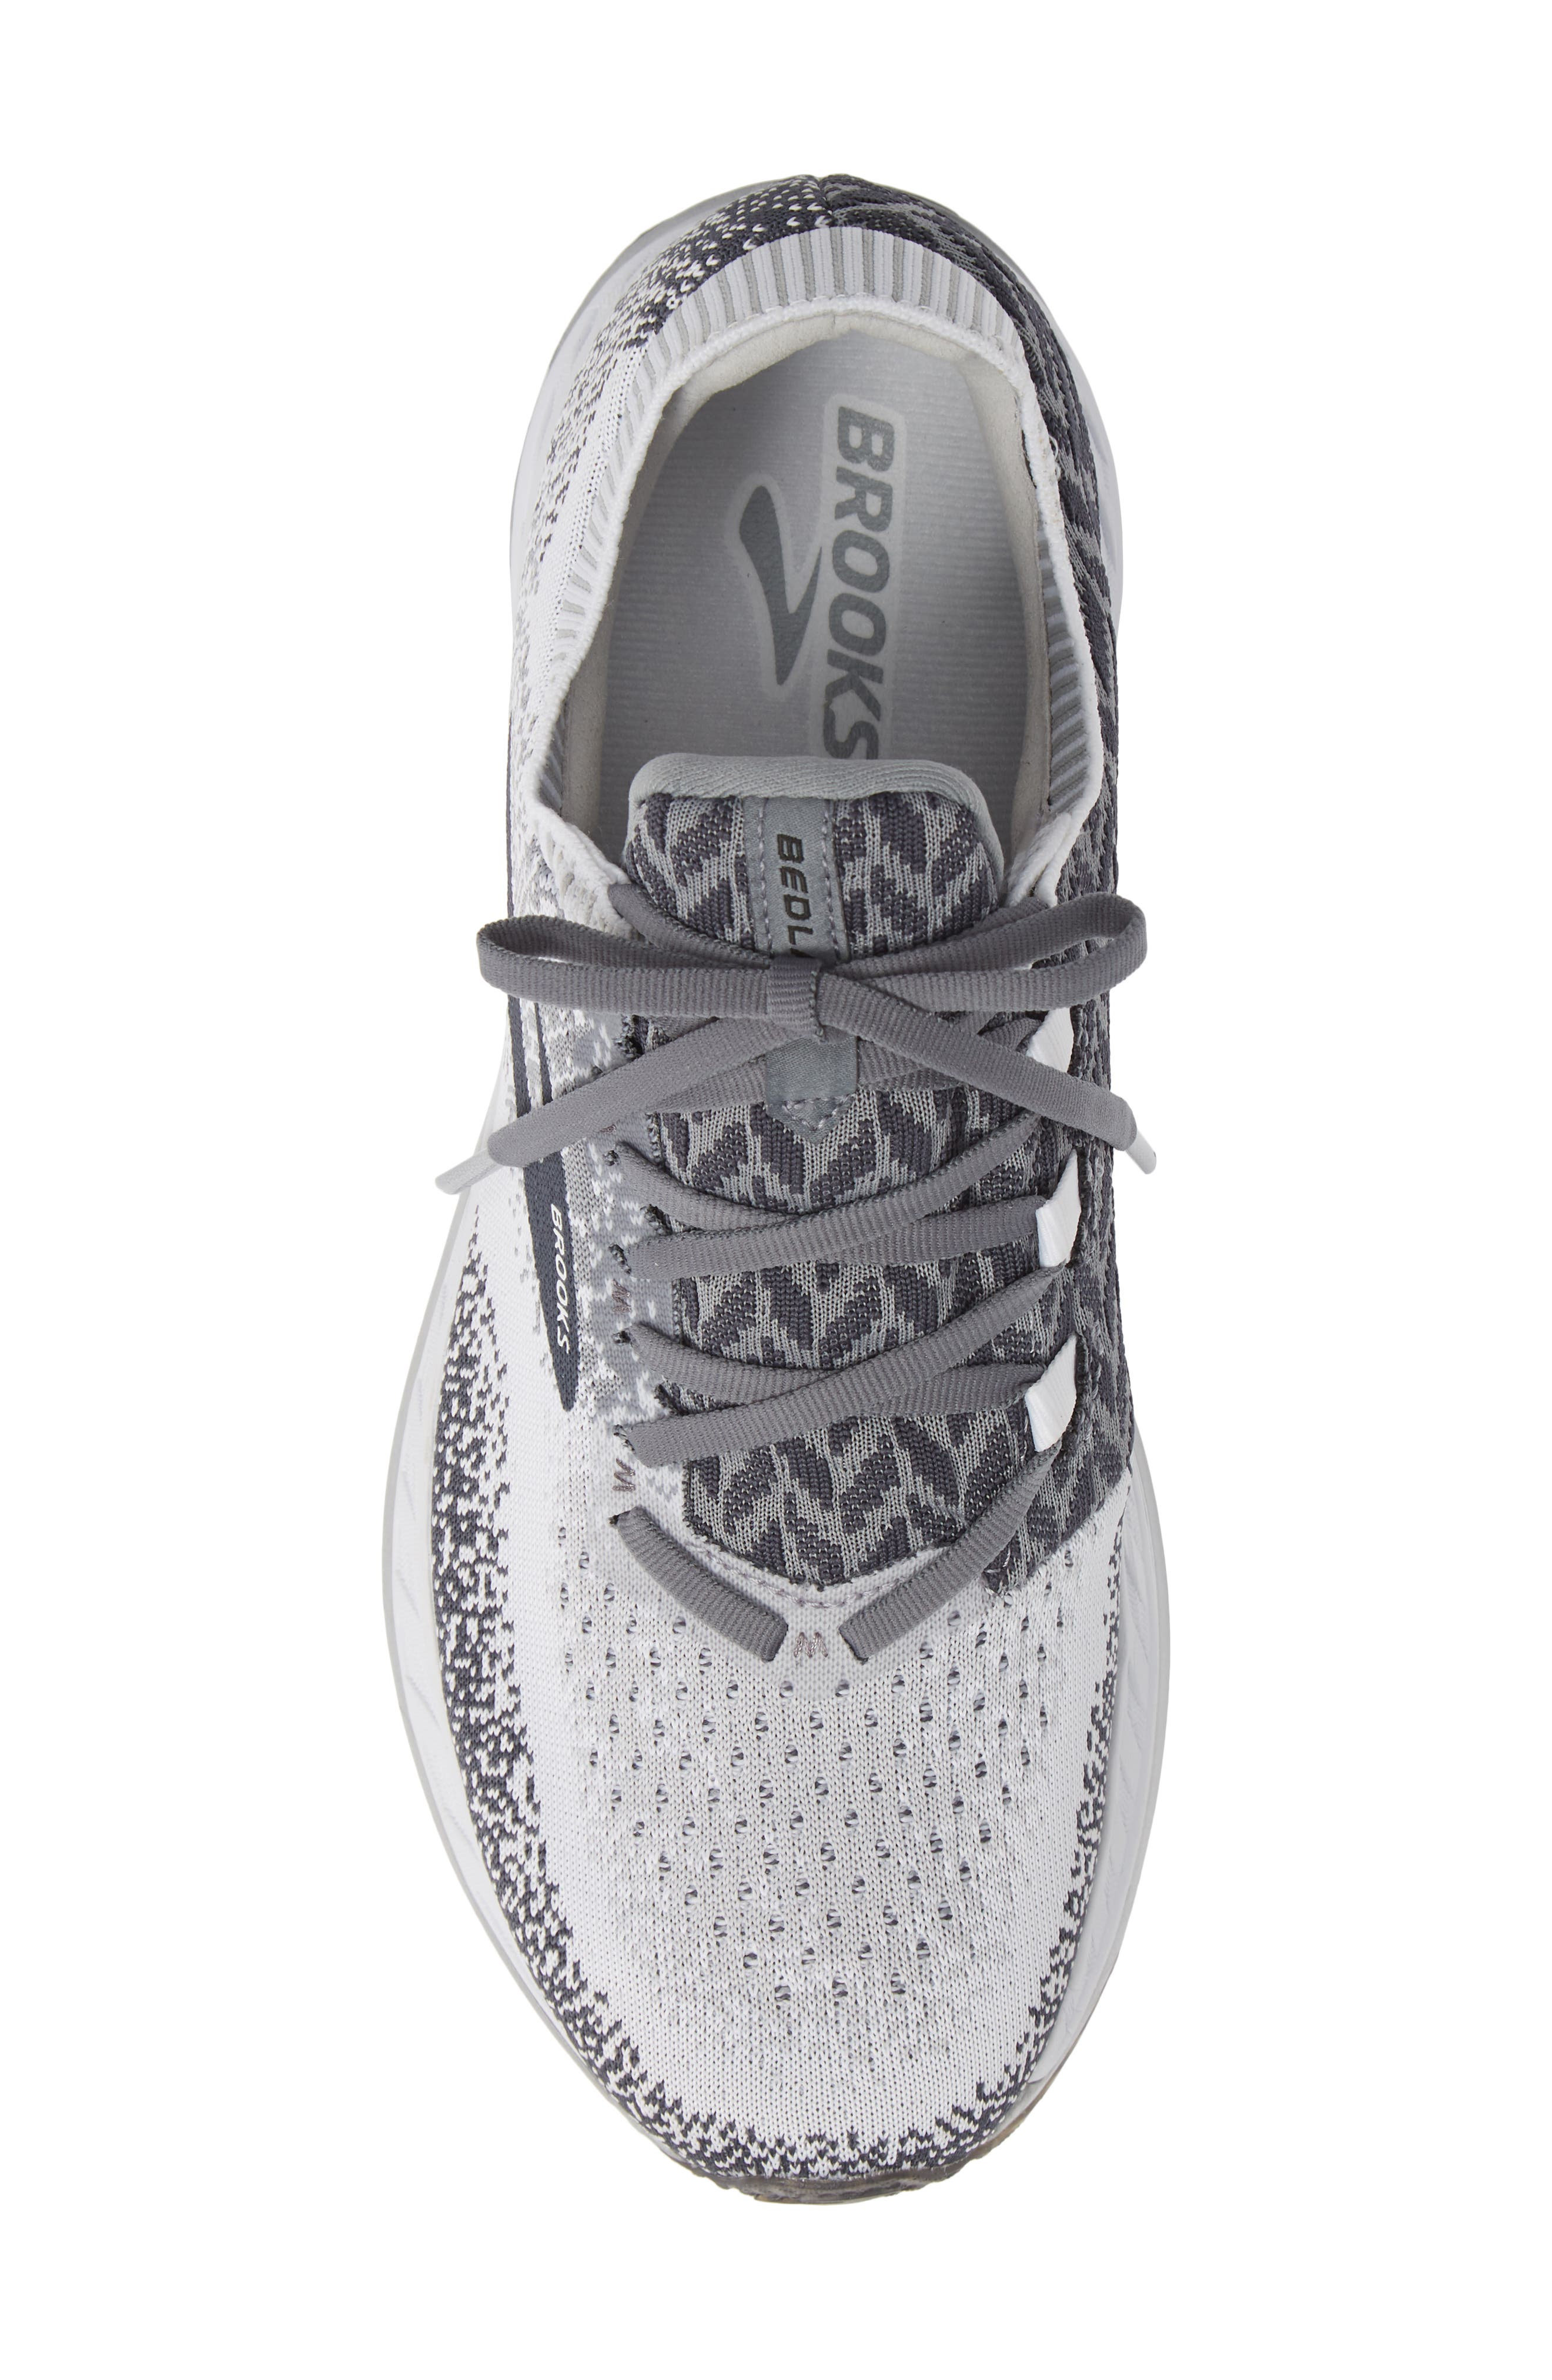 Bedlam Running Shoe,                             Alternate thumbnail 5, color,                             GREY/ WHITE/ EBONY